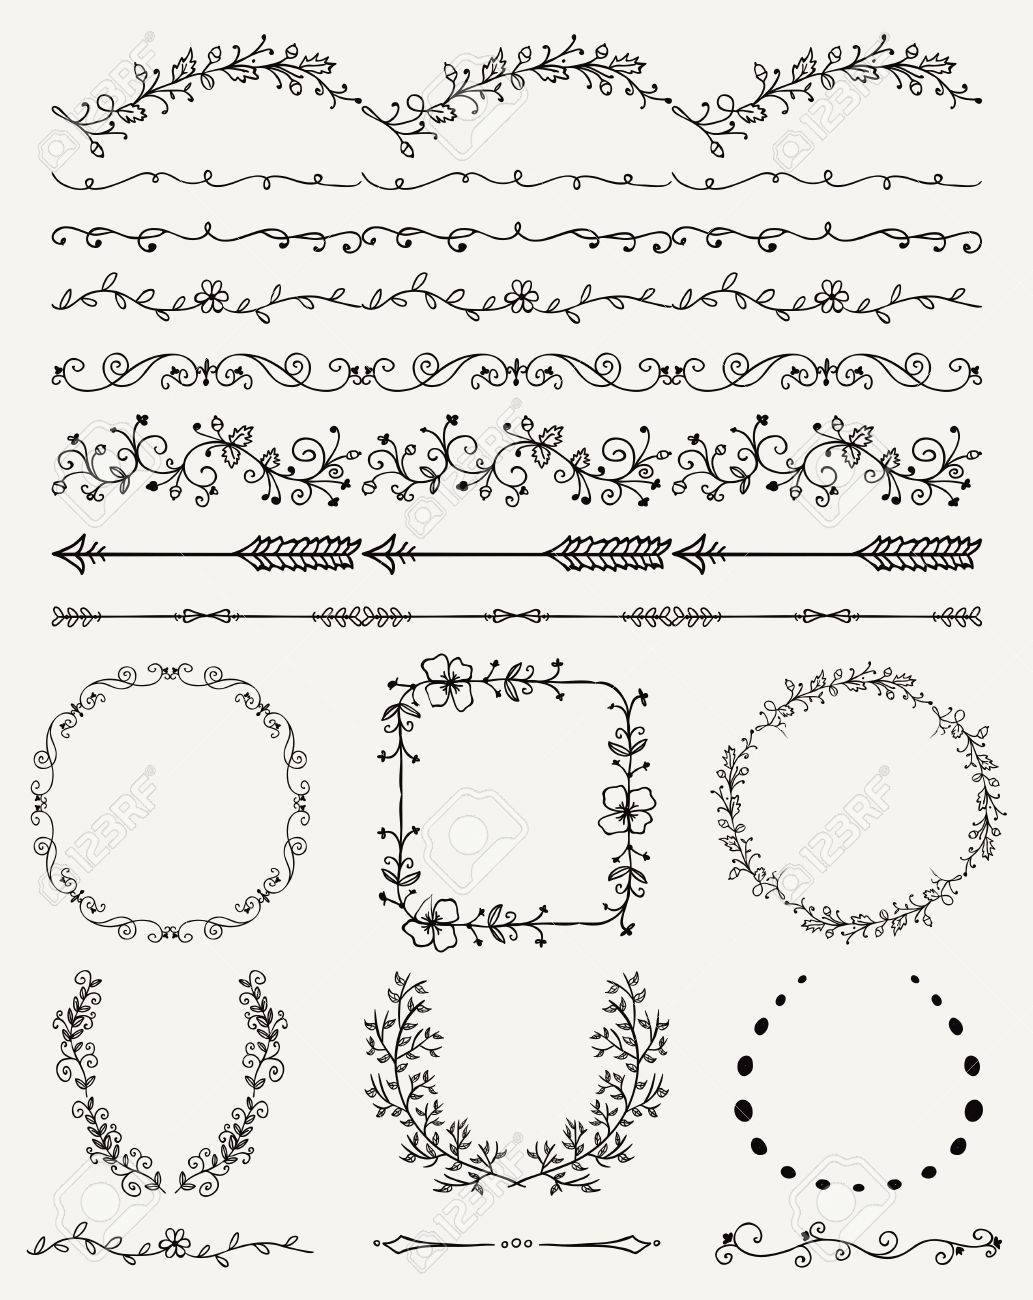 Collection of Black Artistic Hand Sketched Decorative Doodle